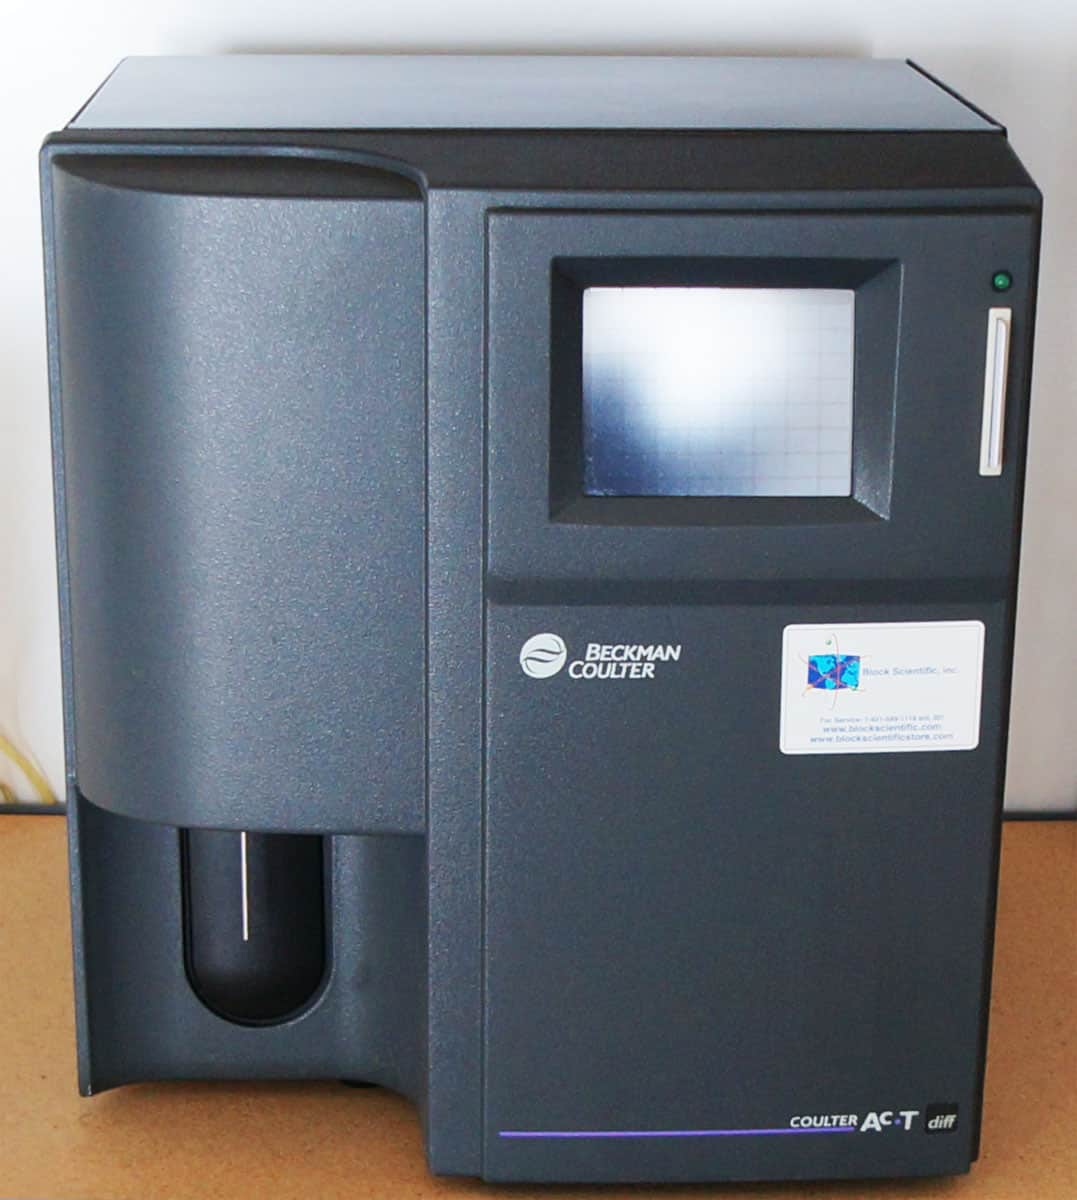 Beckman Coulter Act Diff Hematology Analyzer and Printer